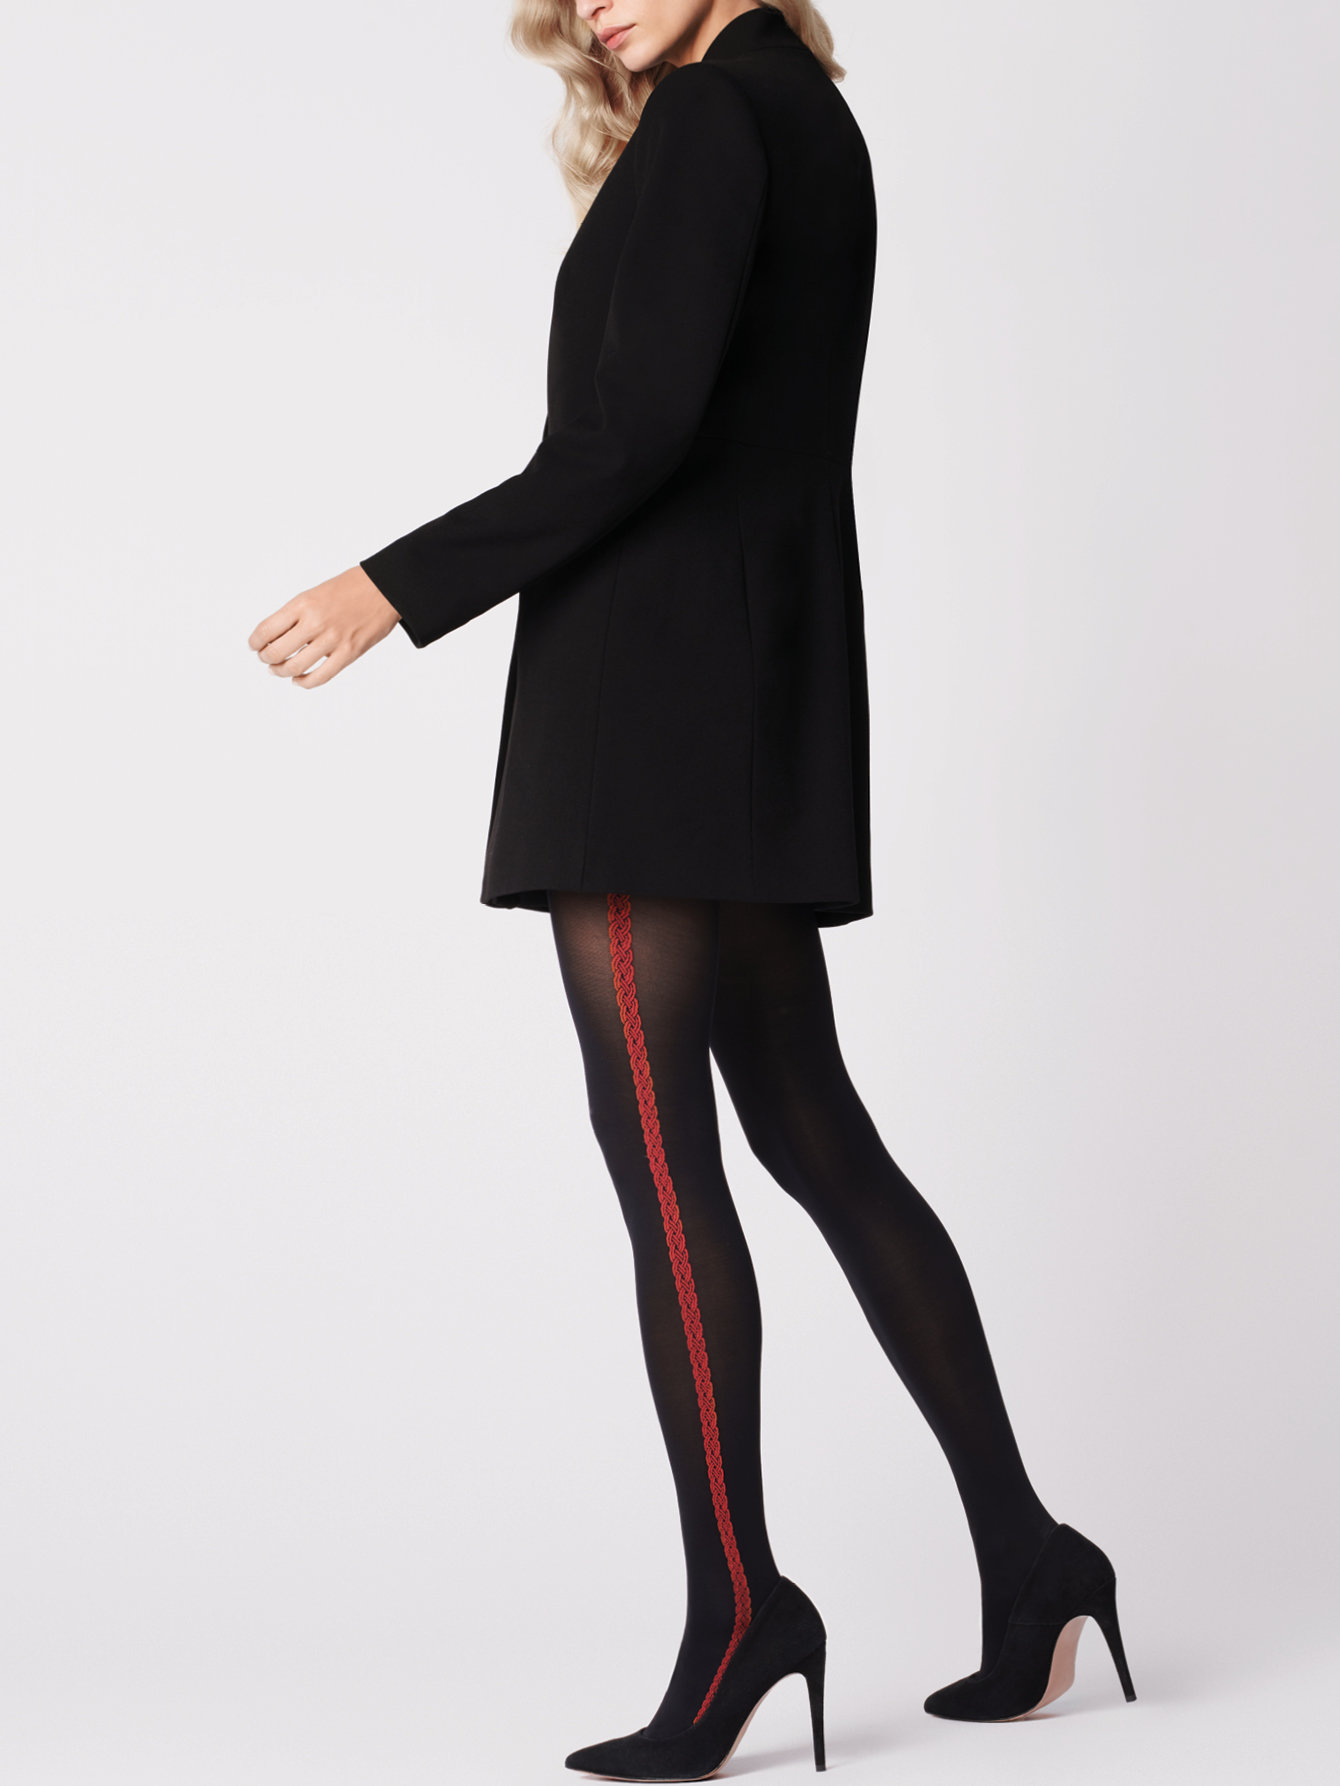 Fiore: Red Lipstick Side Striped Opaque Tights FIO_ROSETTO